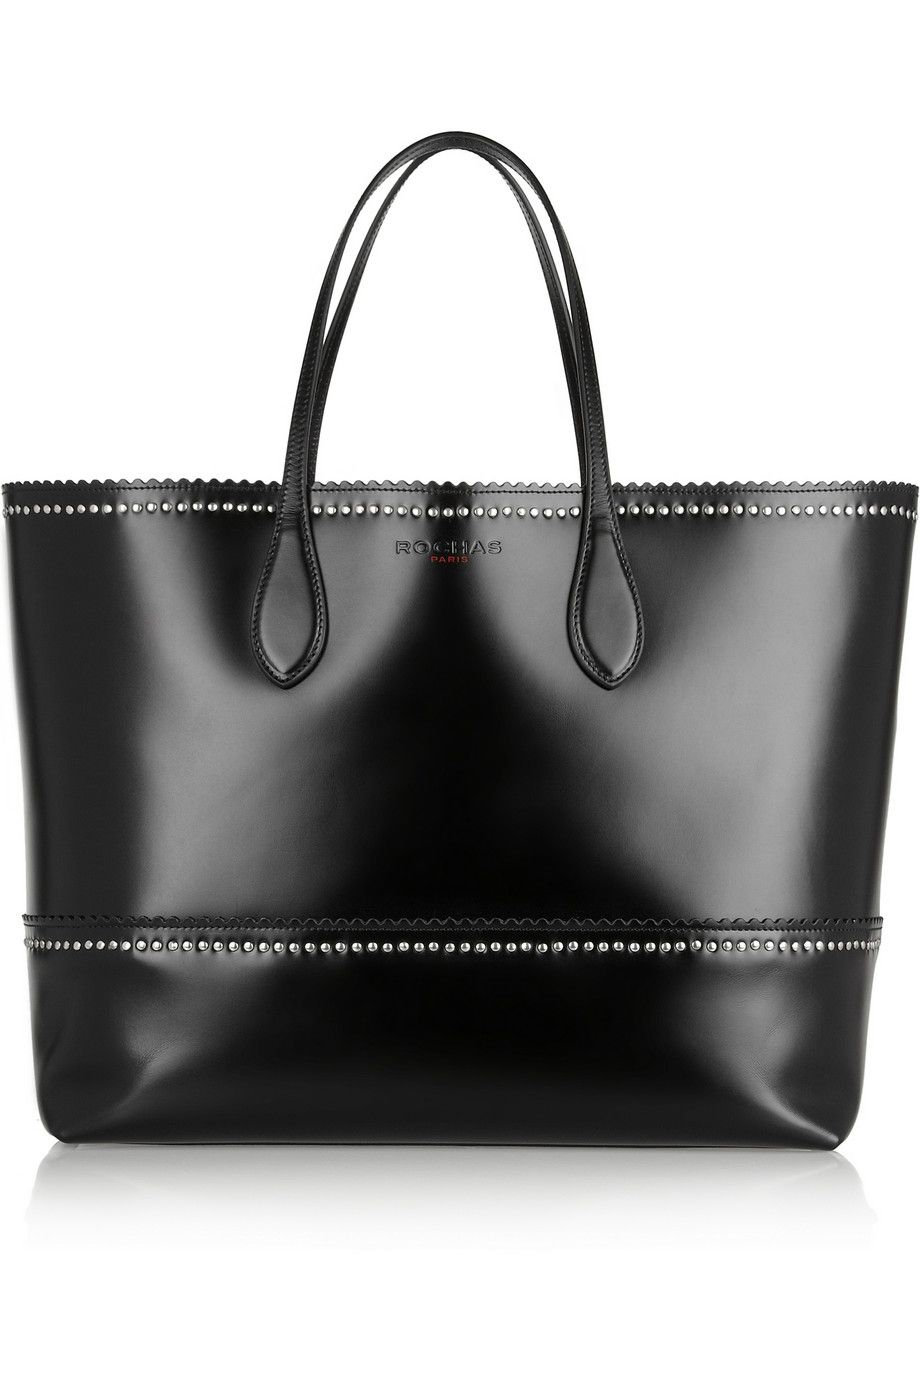 Nothing Found For Handbags 8309 Rochas Studded Leather Tote Bag Ladylike See More About Bags And Totes